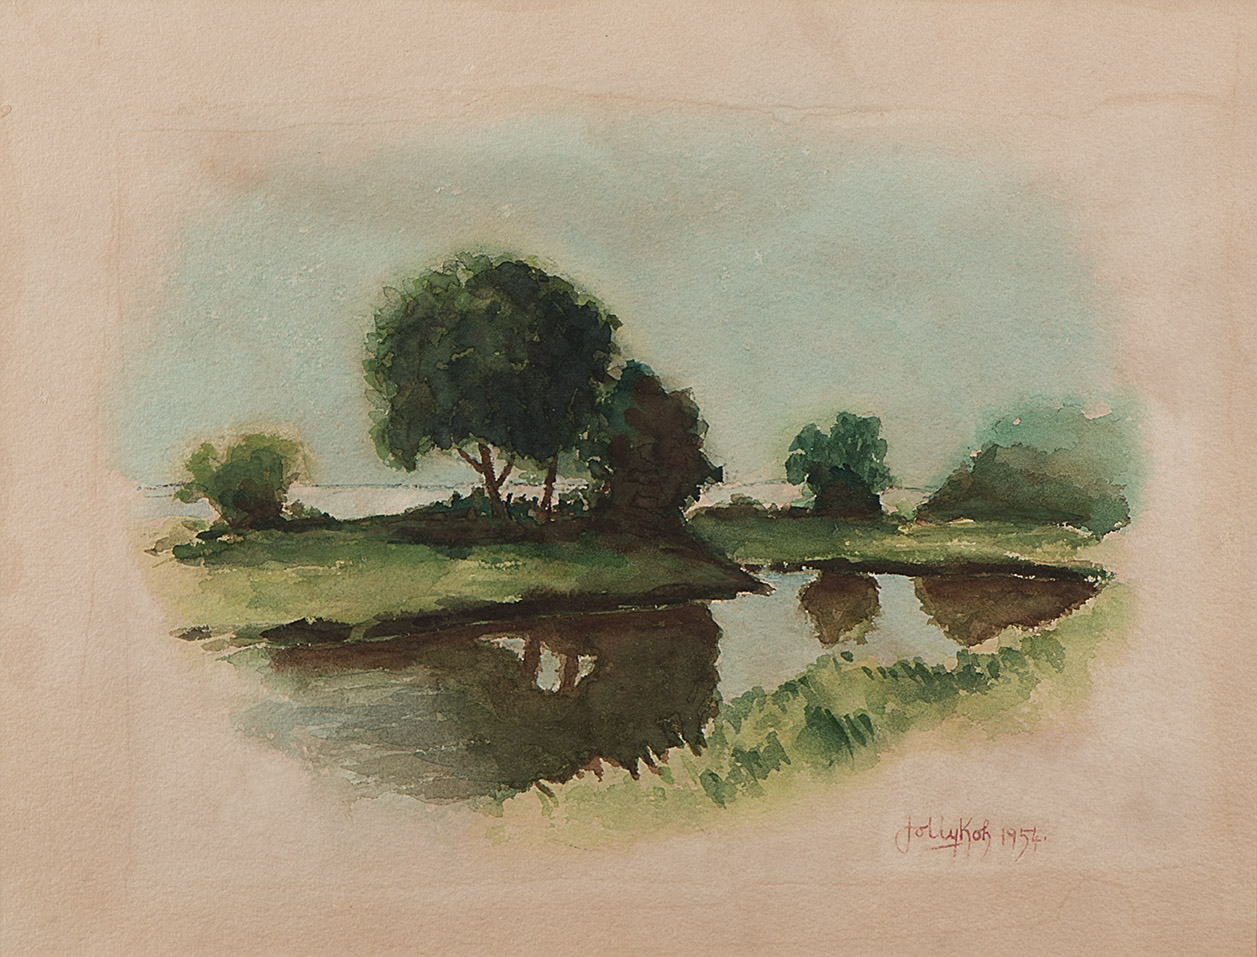 English Landscape, 1954, Watercolour on Paper, 25cm x 33cm